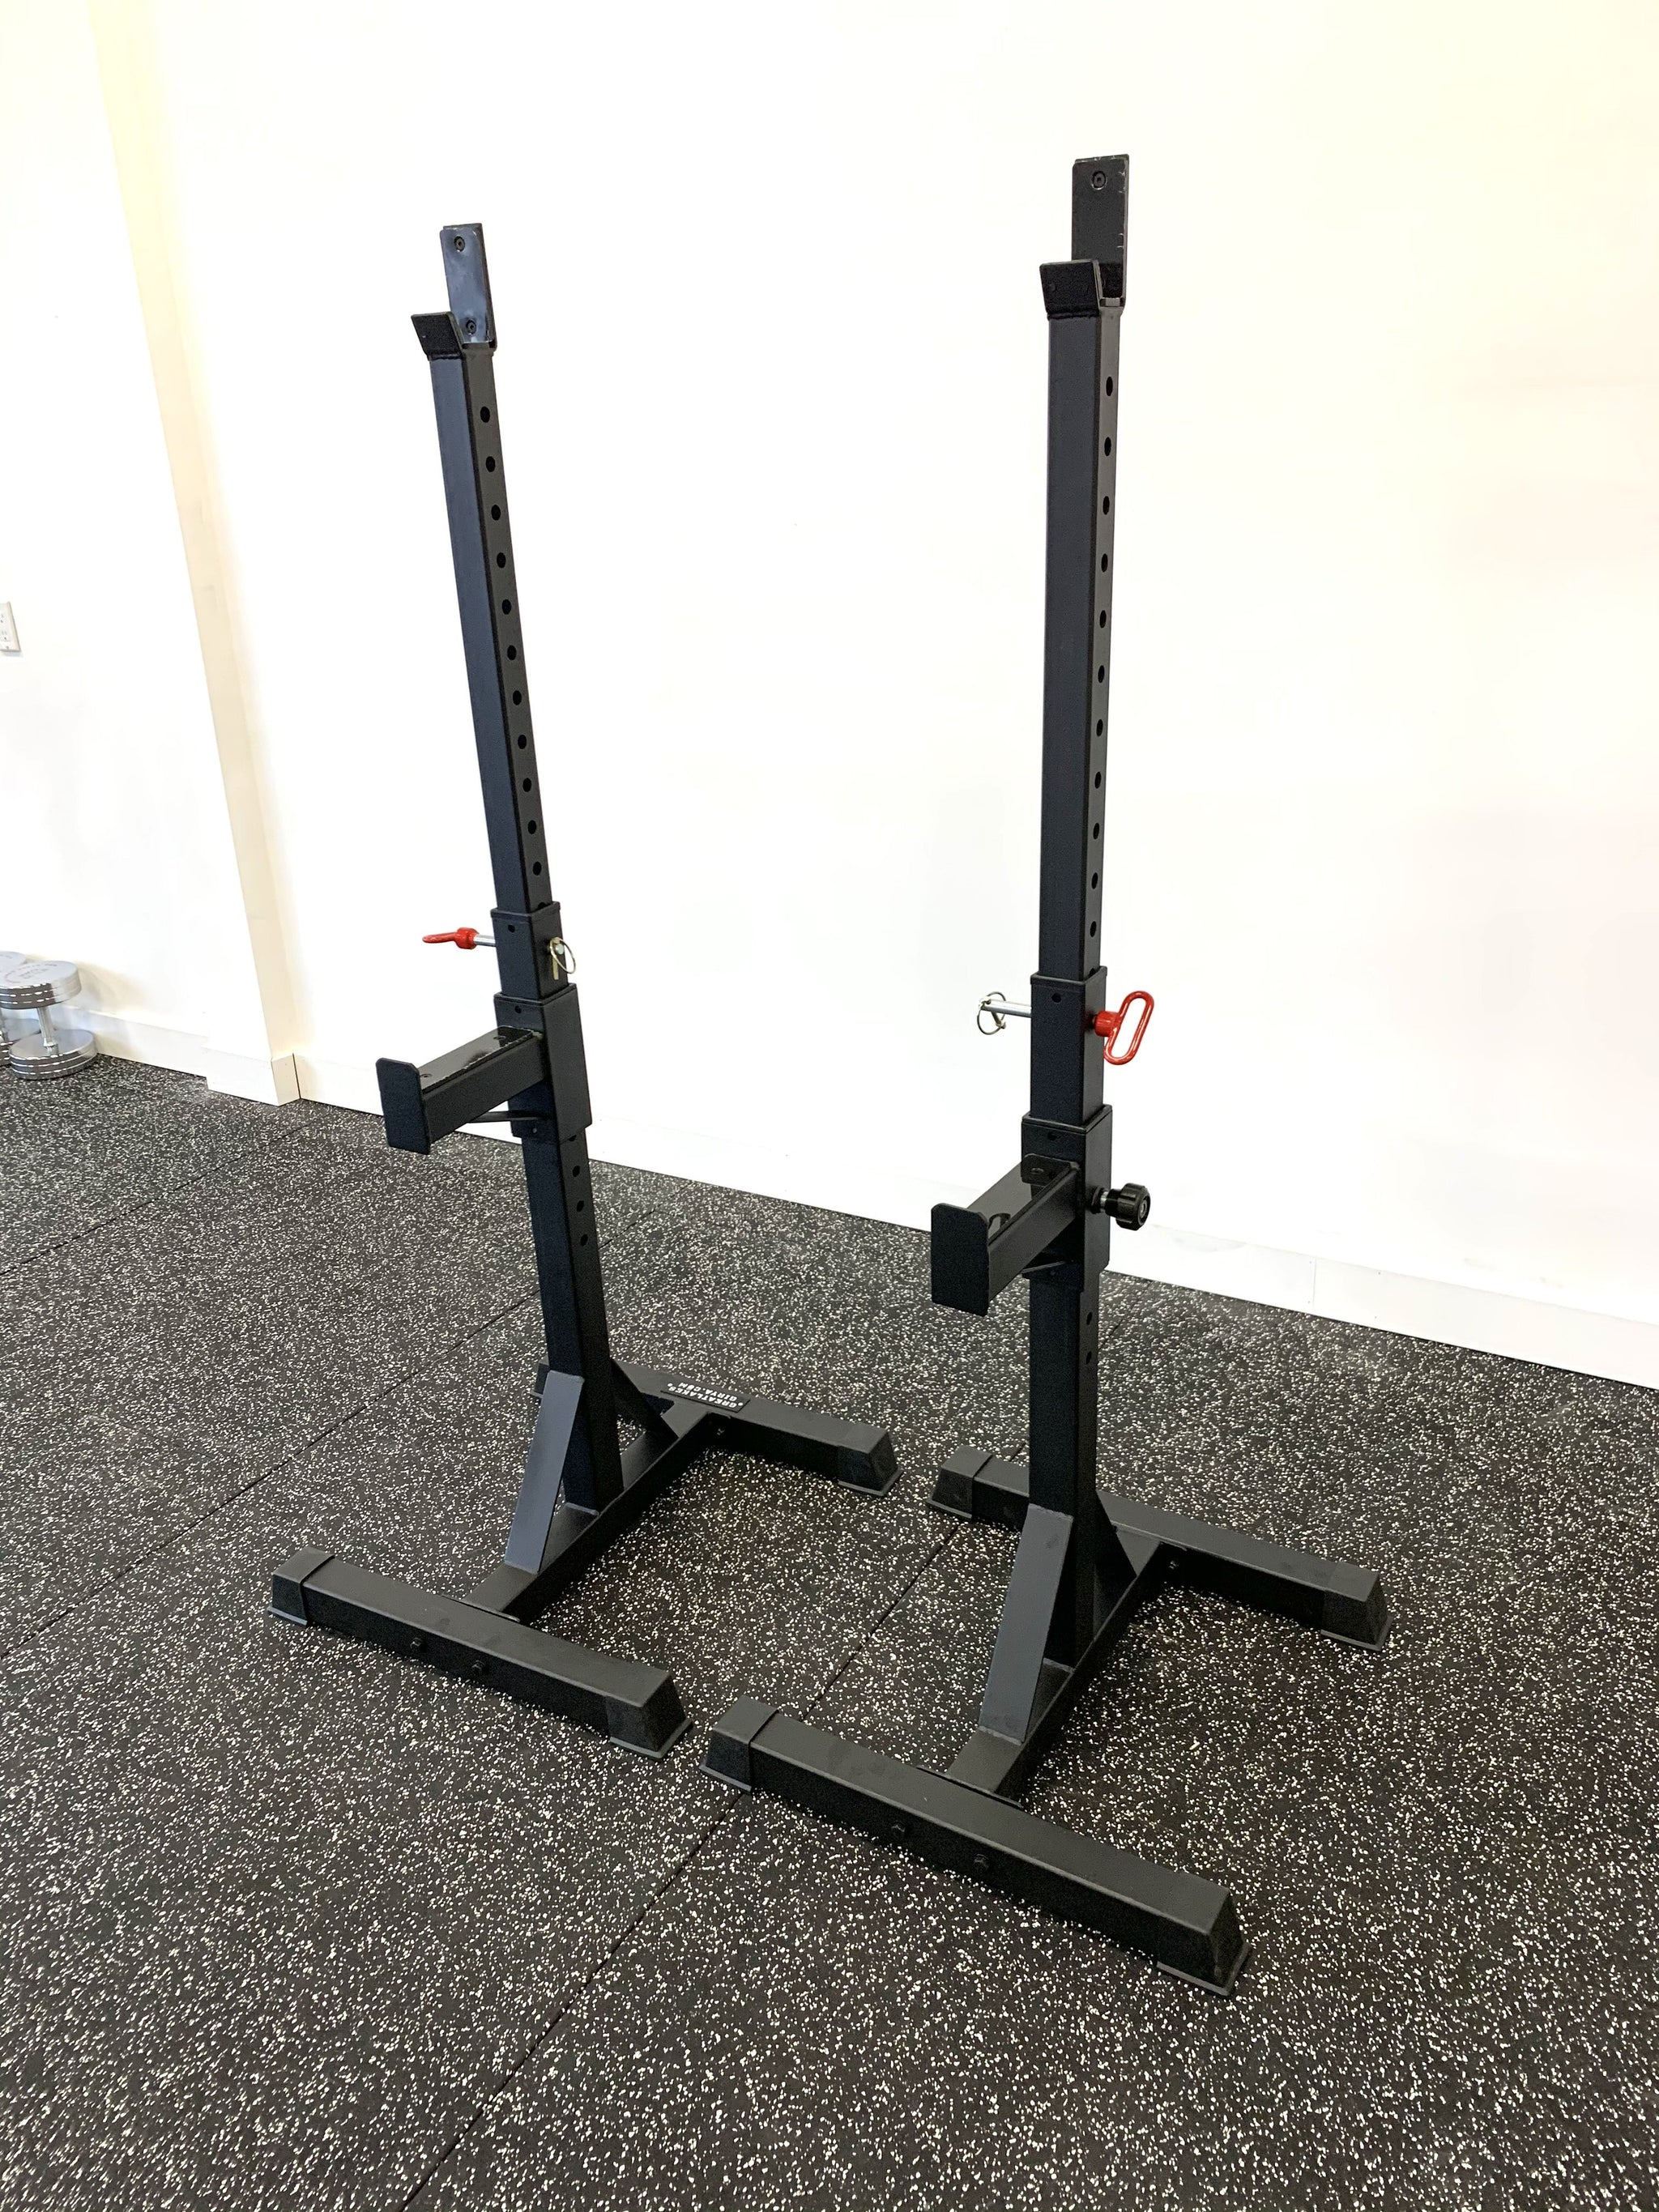 Heavy duty adjustable squat / bench stands